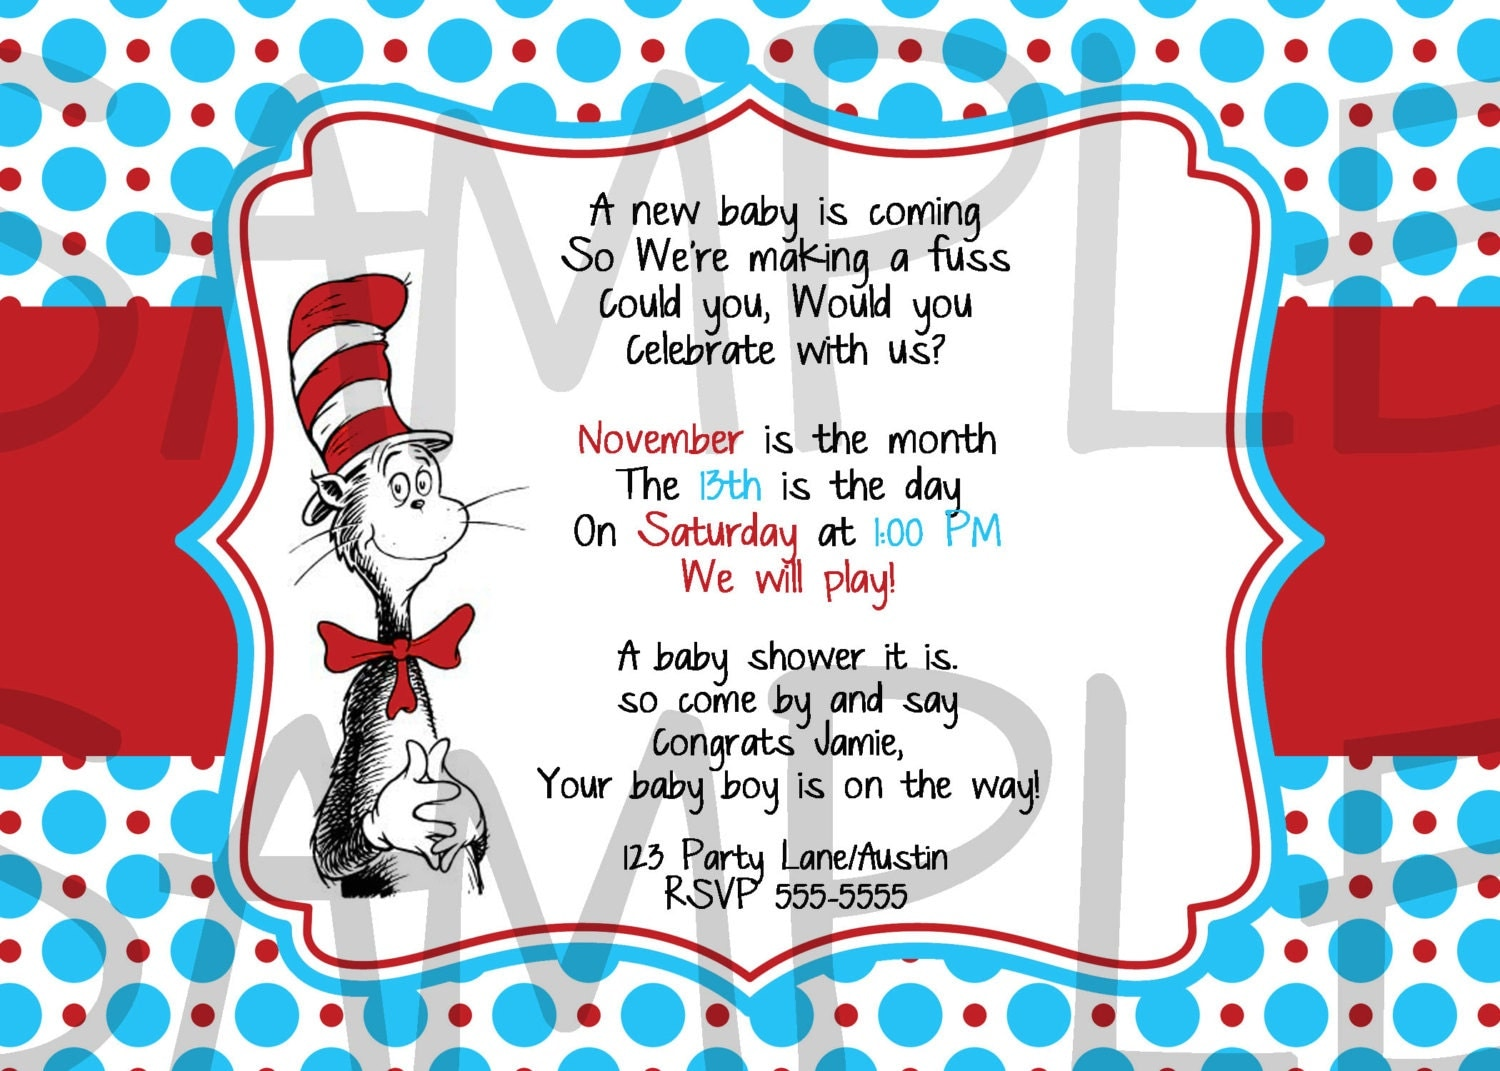 Dr Seuss Baby Shower Invitations Printable Free was very inspiring ideas you may choose for invitation ideas